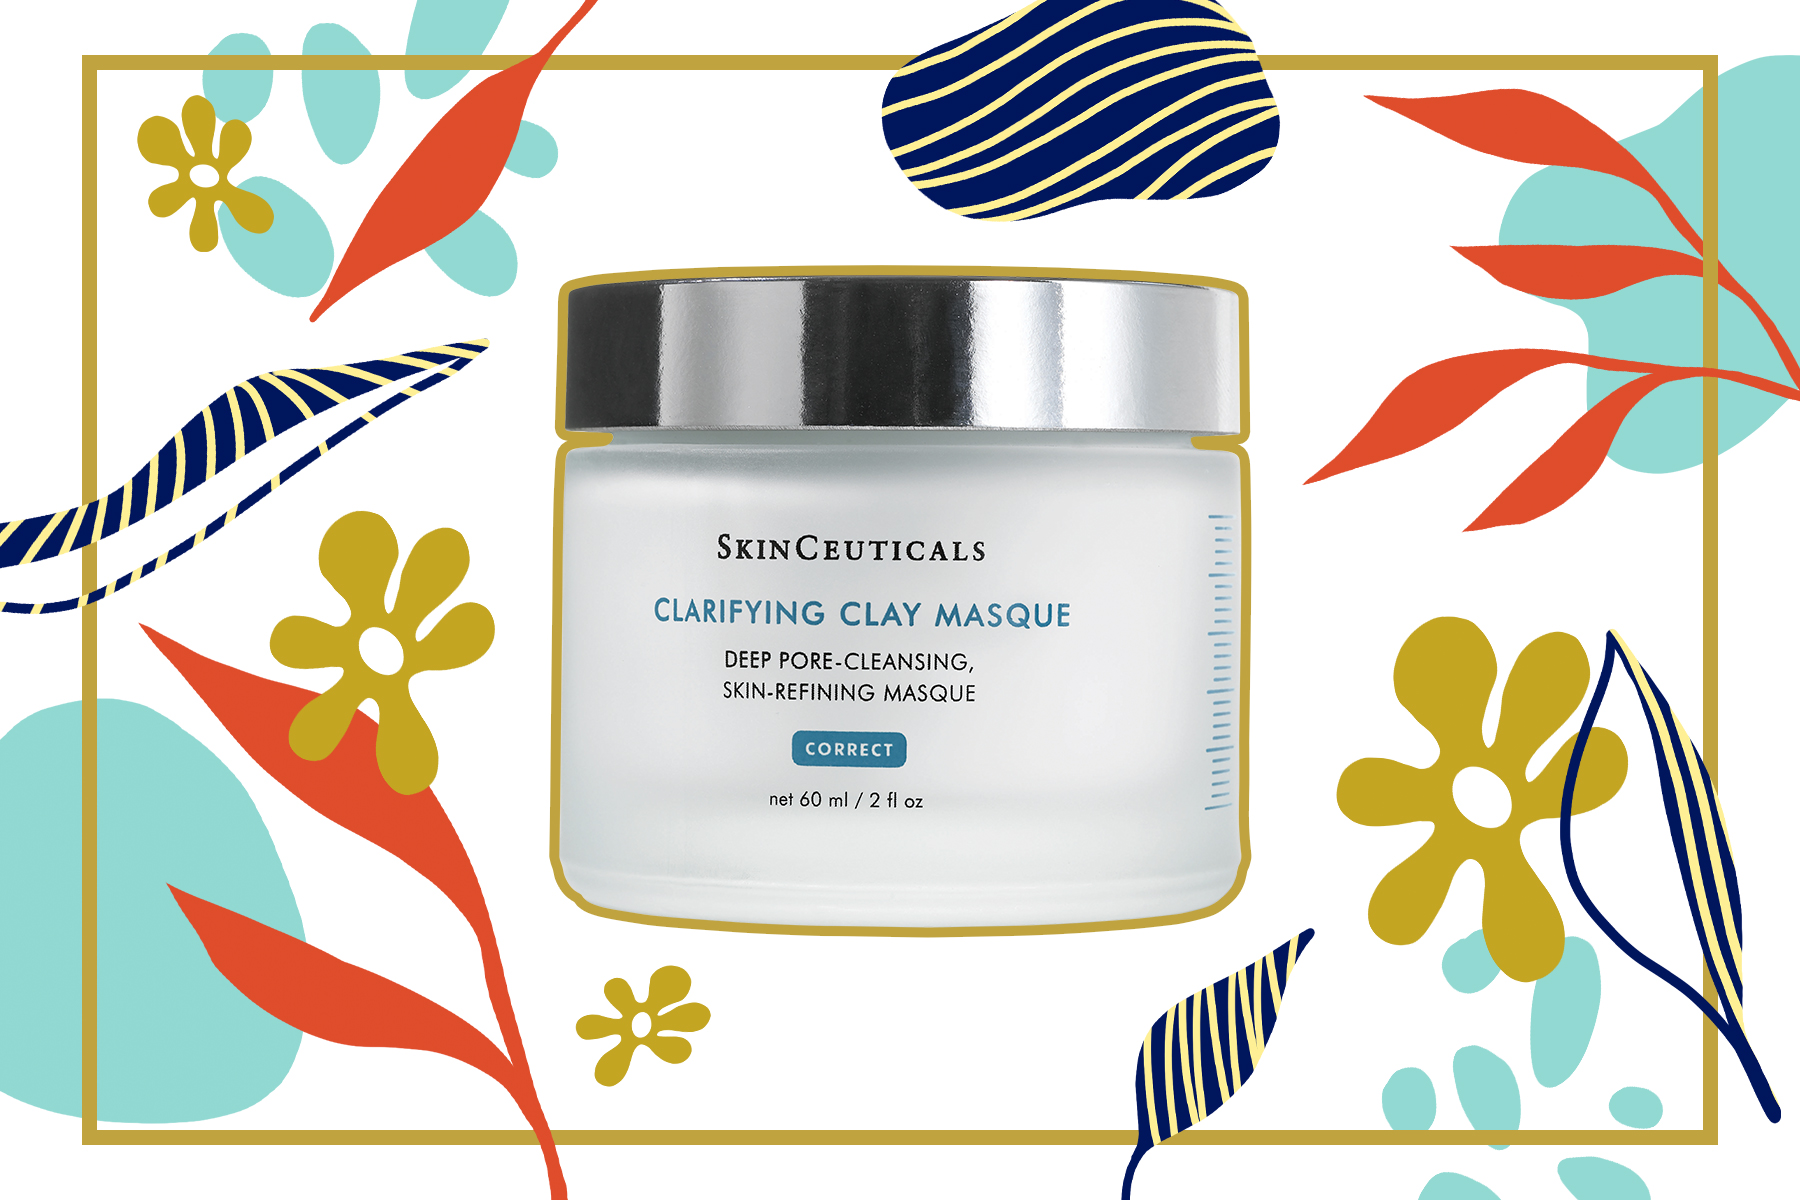 Skinceuticals clay mask